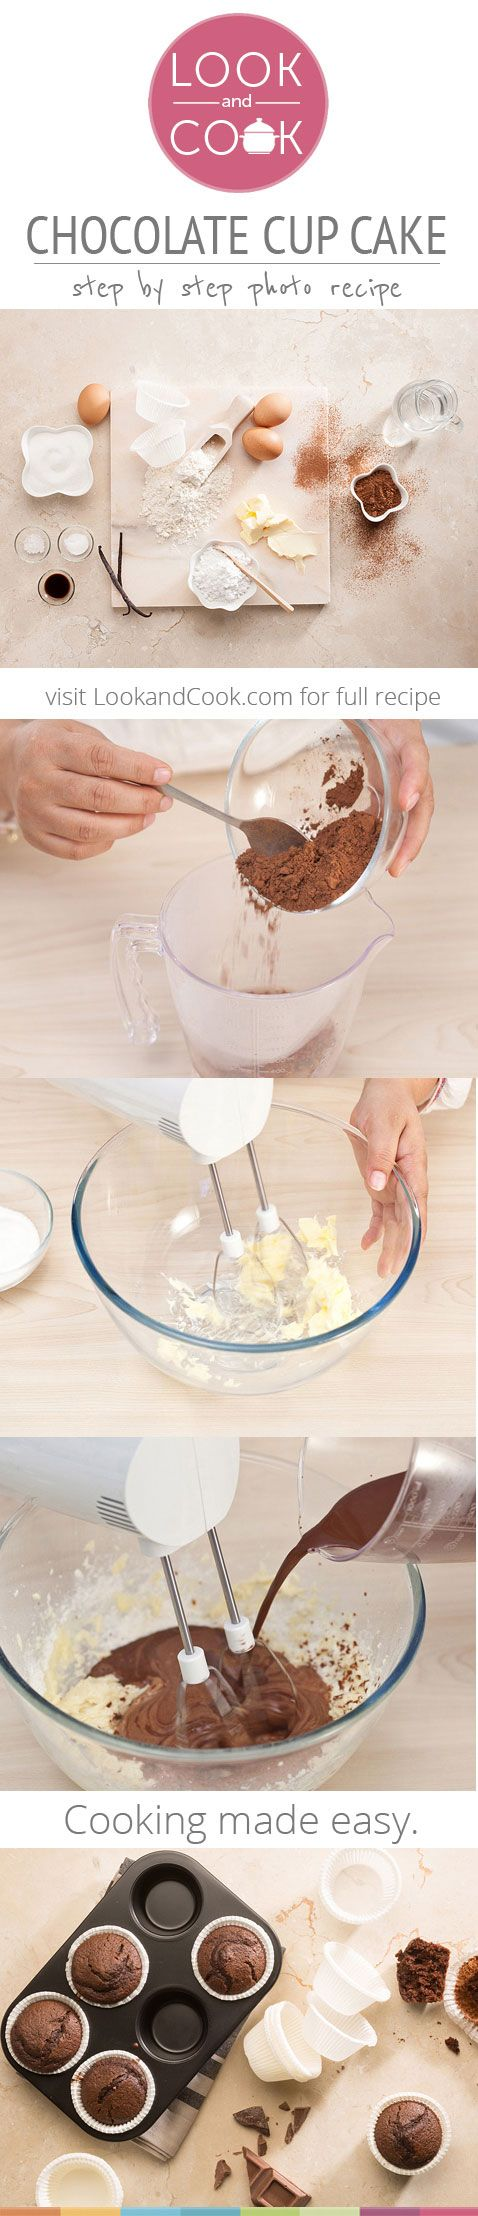 CHOCOLATE CUP CAKE RECIPE Chocolate cup cake (#LC14069): Chocolate cupcakes are the perfect cupcakes which are especially delicious, soft and moist and fresh cake from the oven which are absolutely heavenly.